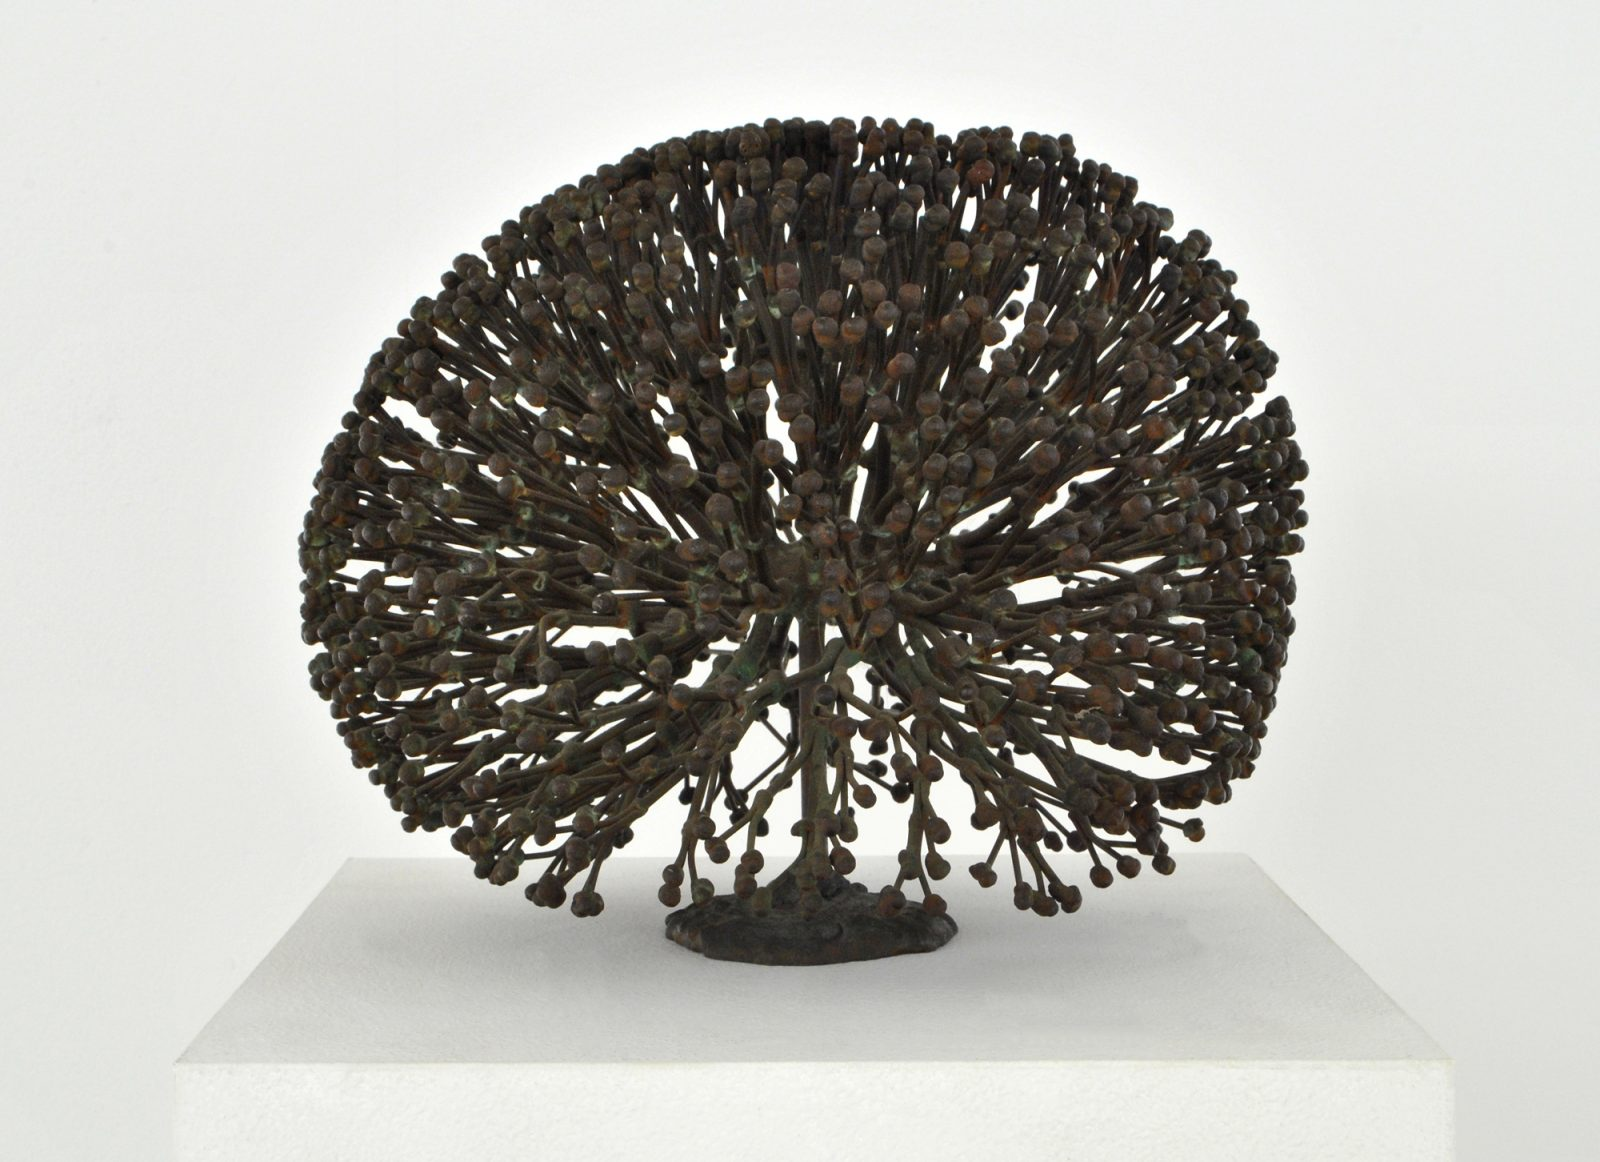 Small bush-type sculpture made in bronze